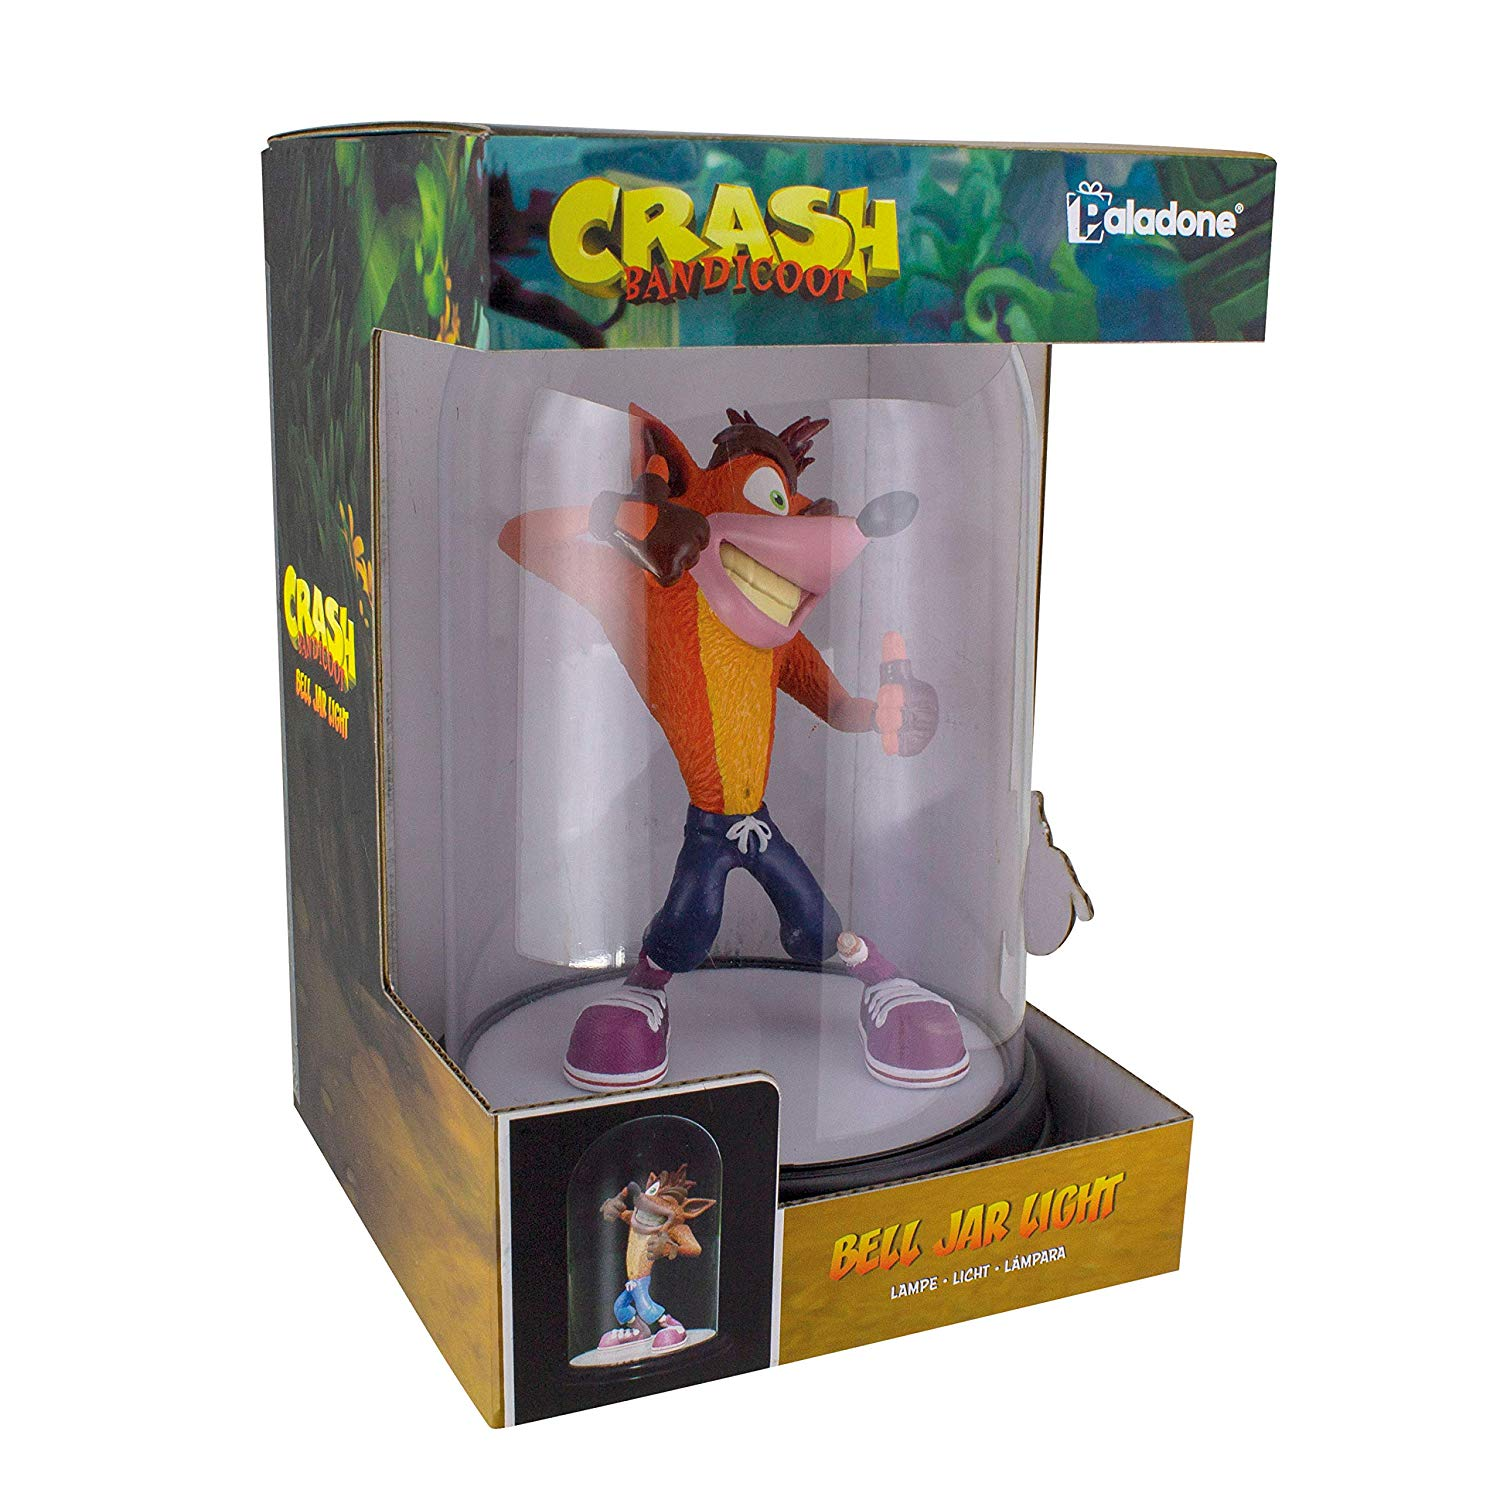 Crash Bandicoot Bell Jar Light